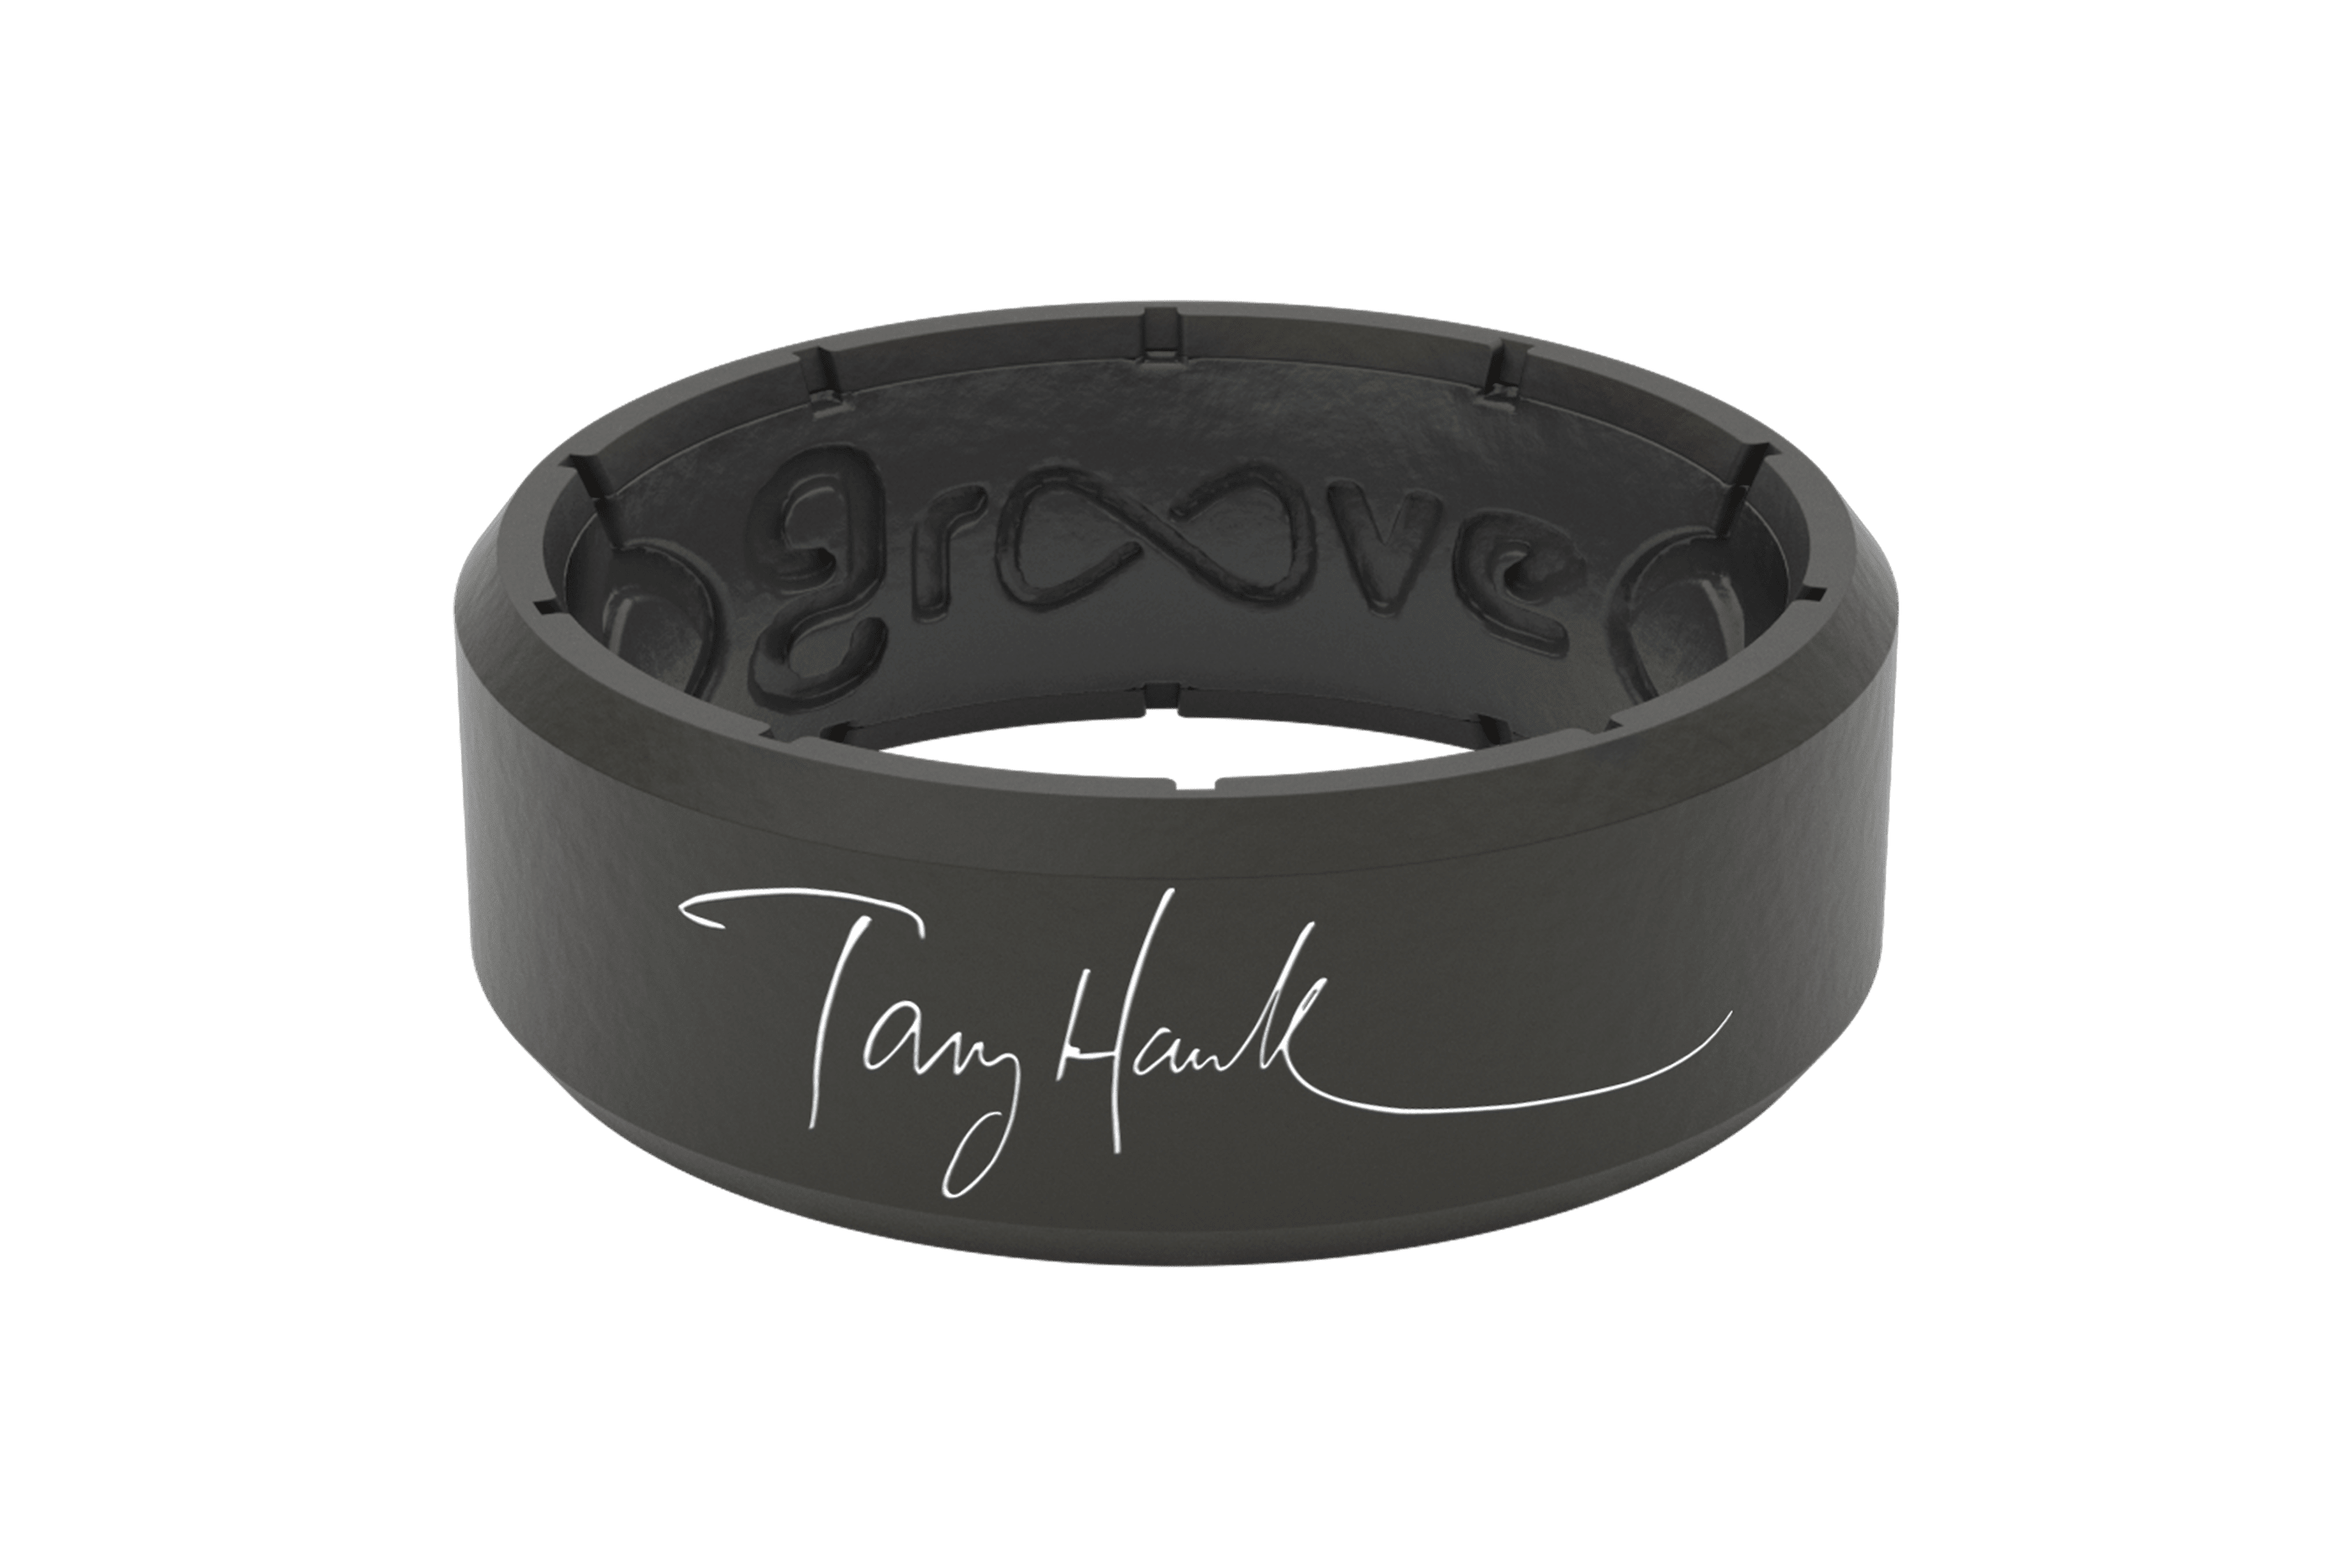 Tony Hawk Signature Ring  viewed front on